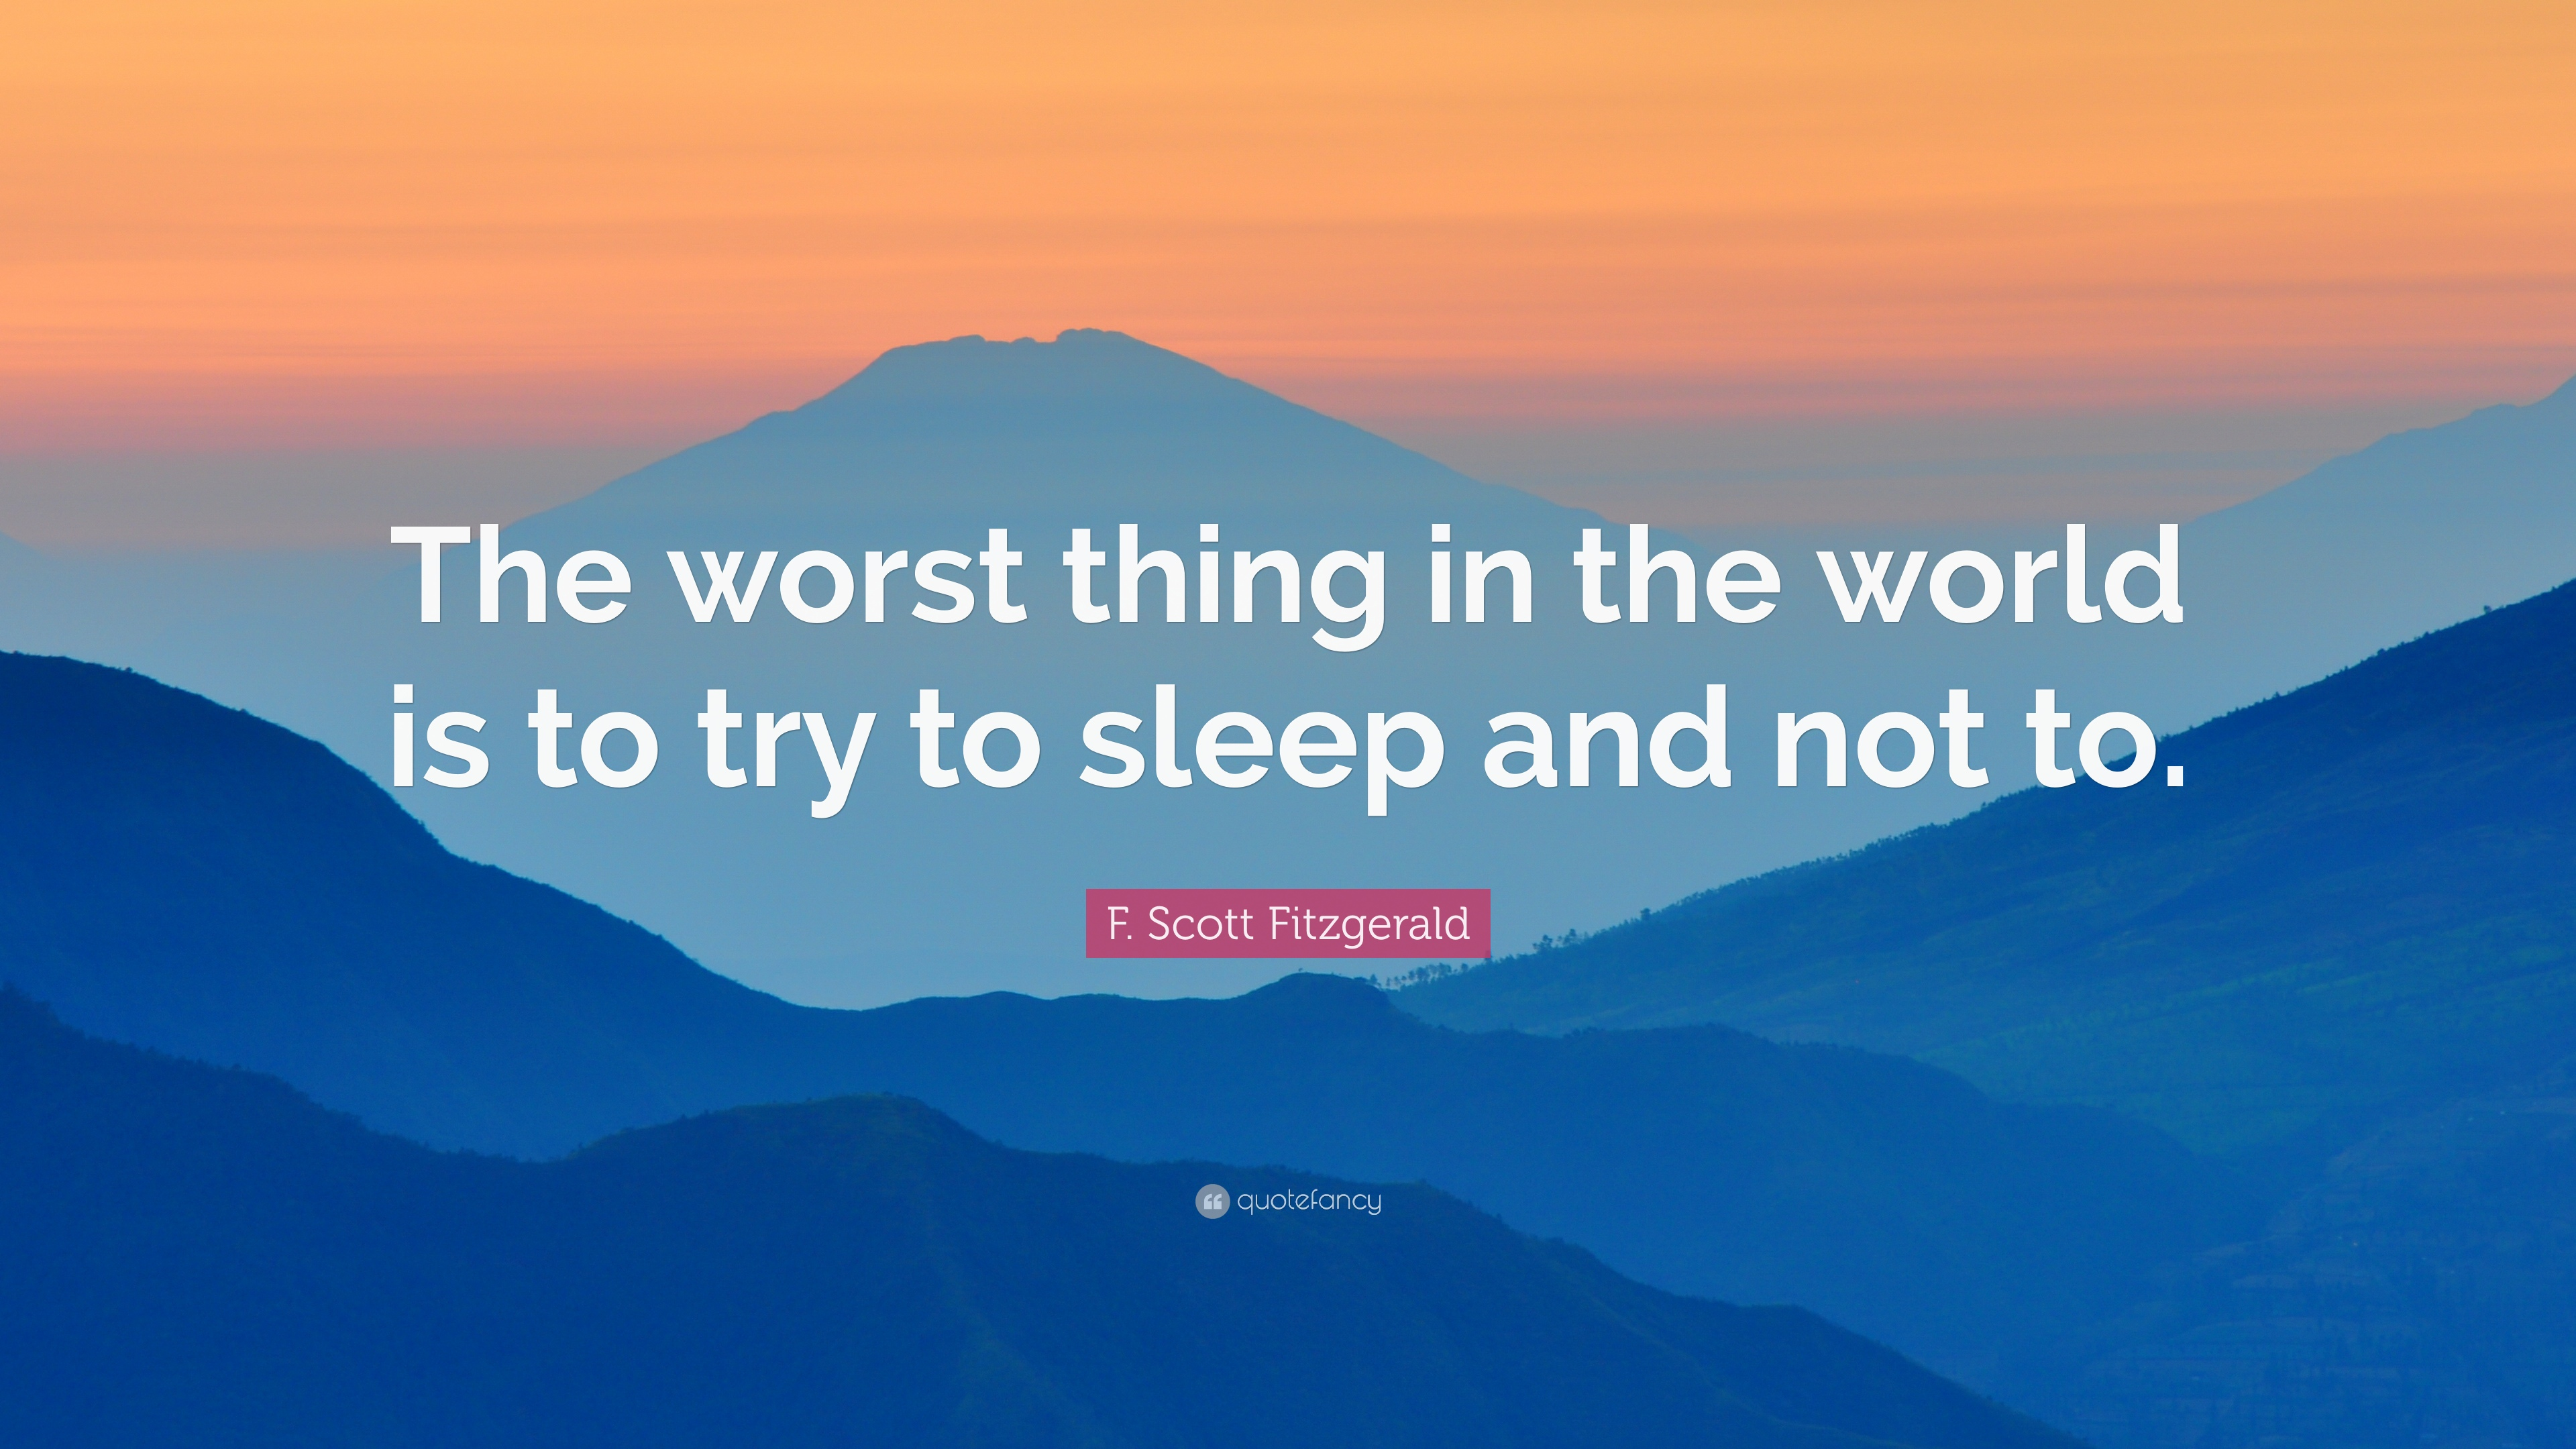 the worst thing in the world essay If it was a bad thing, something awful, it would have changed instead of reaching the whole world is something crazy, used 24hrs a day, everyday of the week, a lot of information, and a lot of people online.